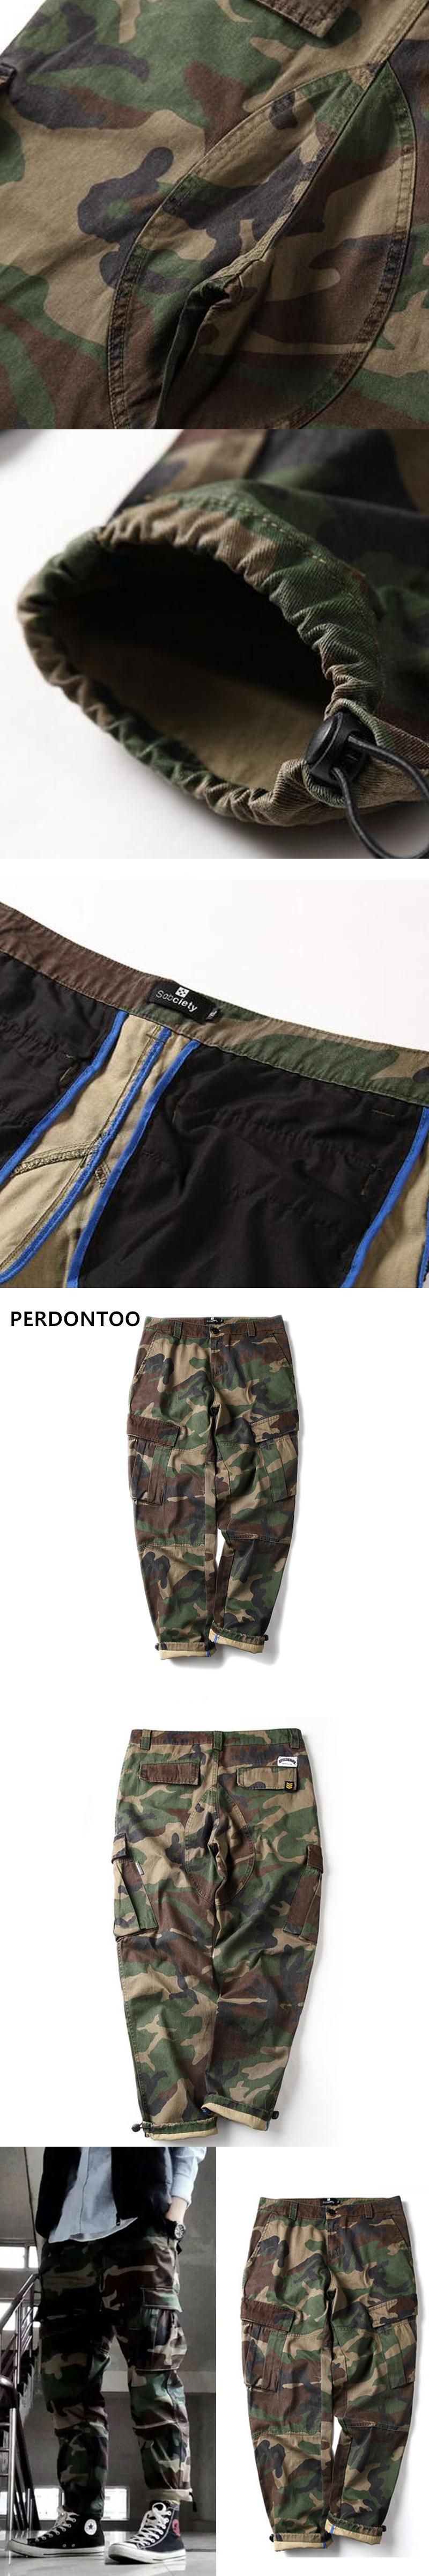 1474d89d34c 2017 Newest Fashion Camouflage Men s Cargo Joggers Pants Military For Men  Multi Pocket Overalls Tactical Army